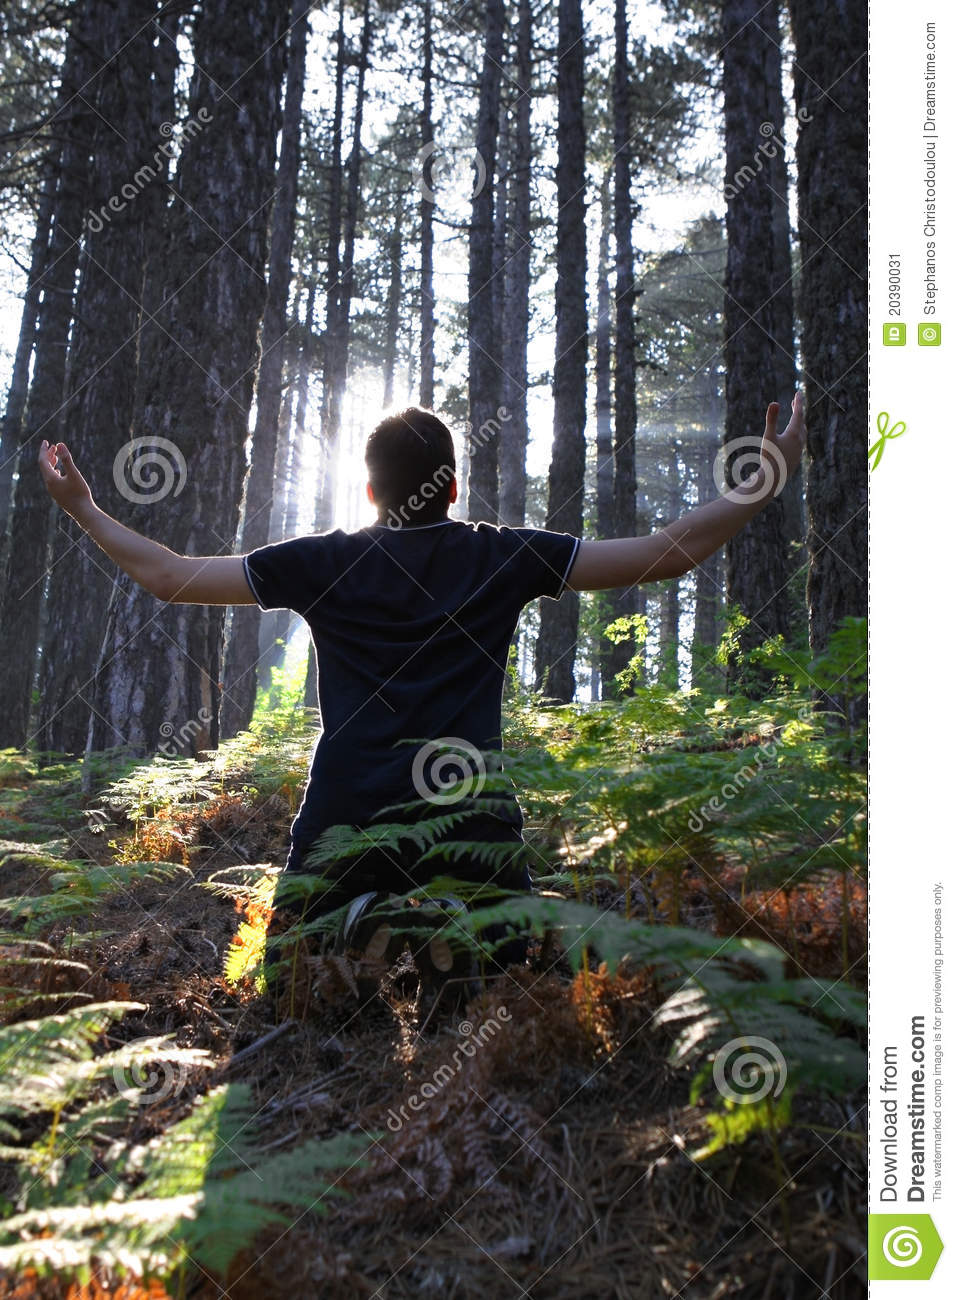 Man Kneeling with Arms Lifted in Forest